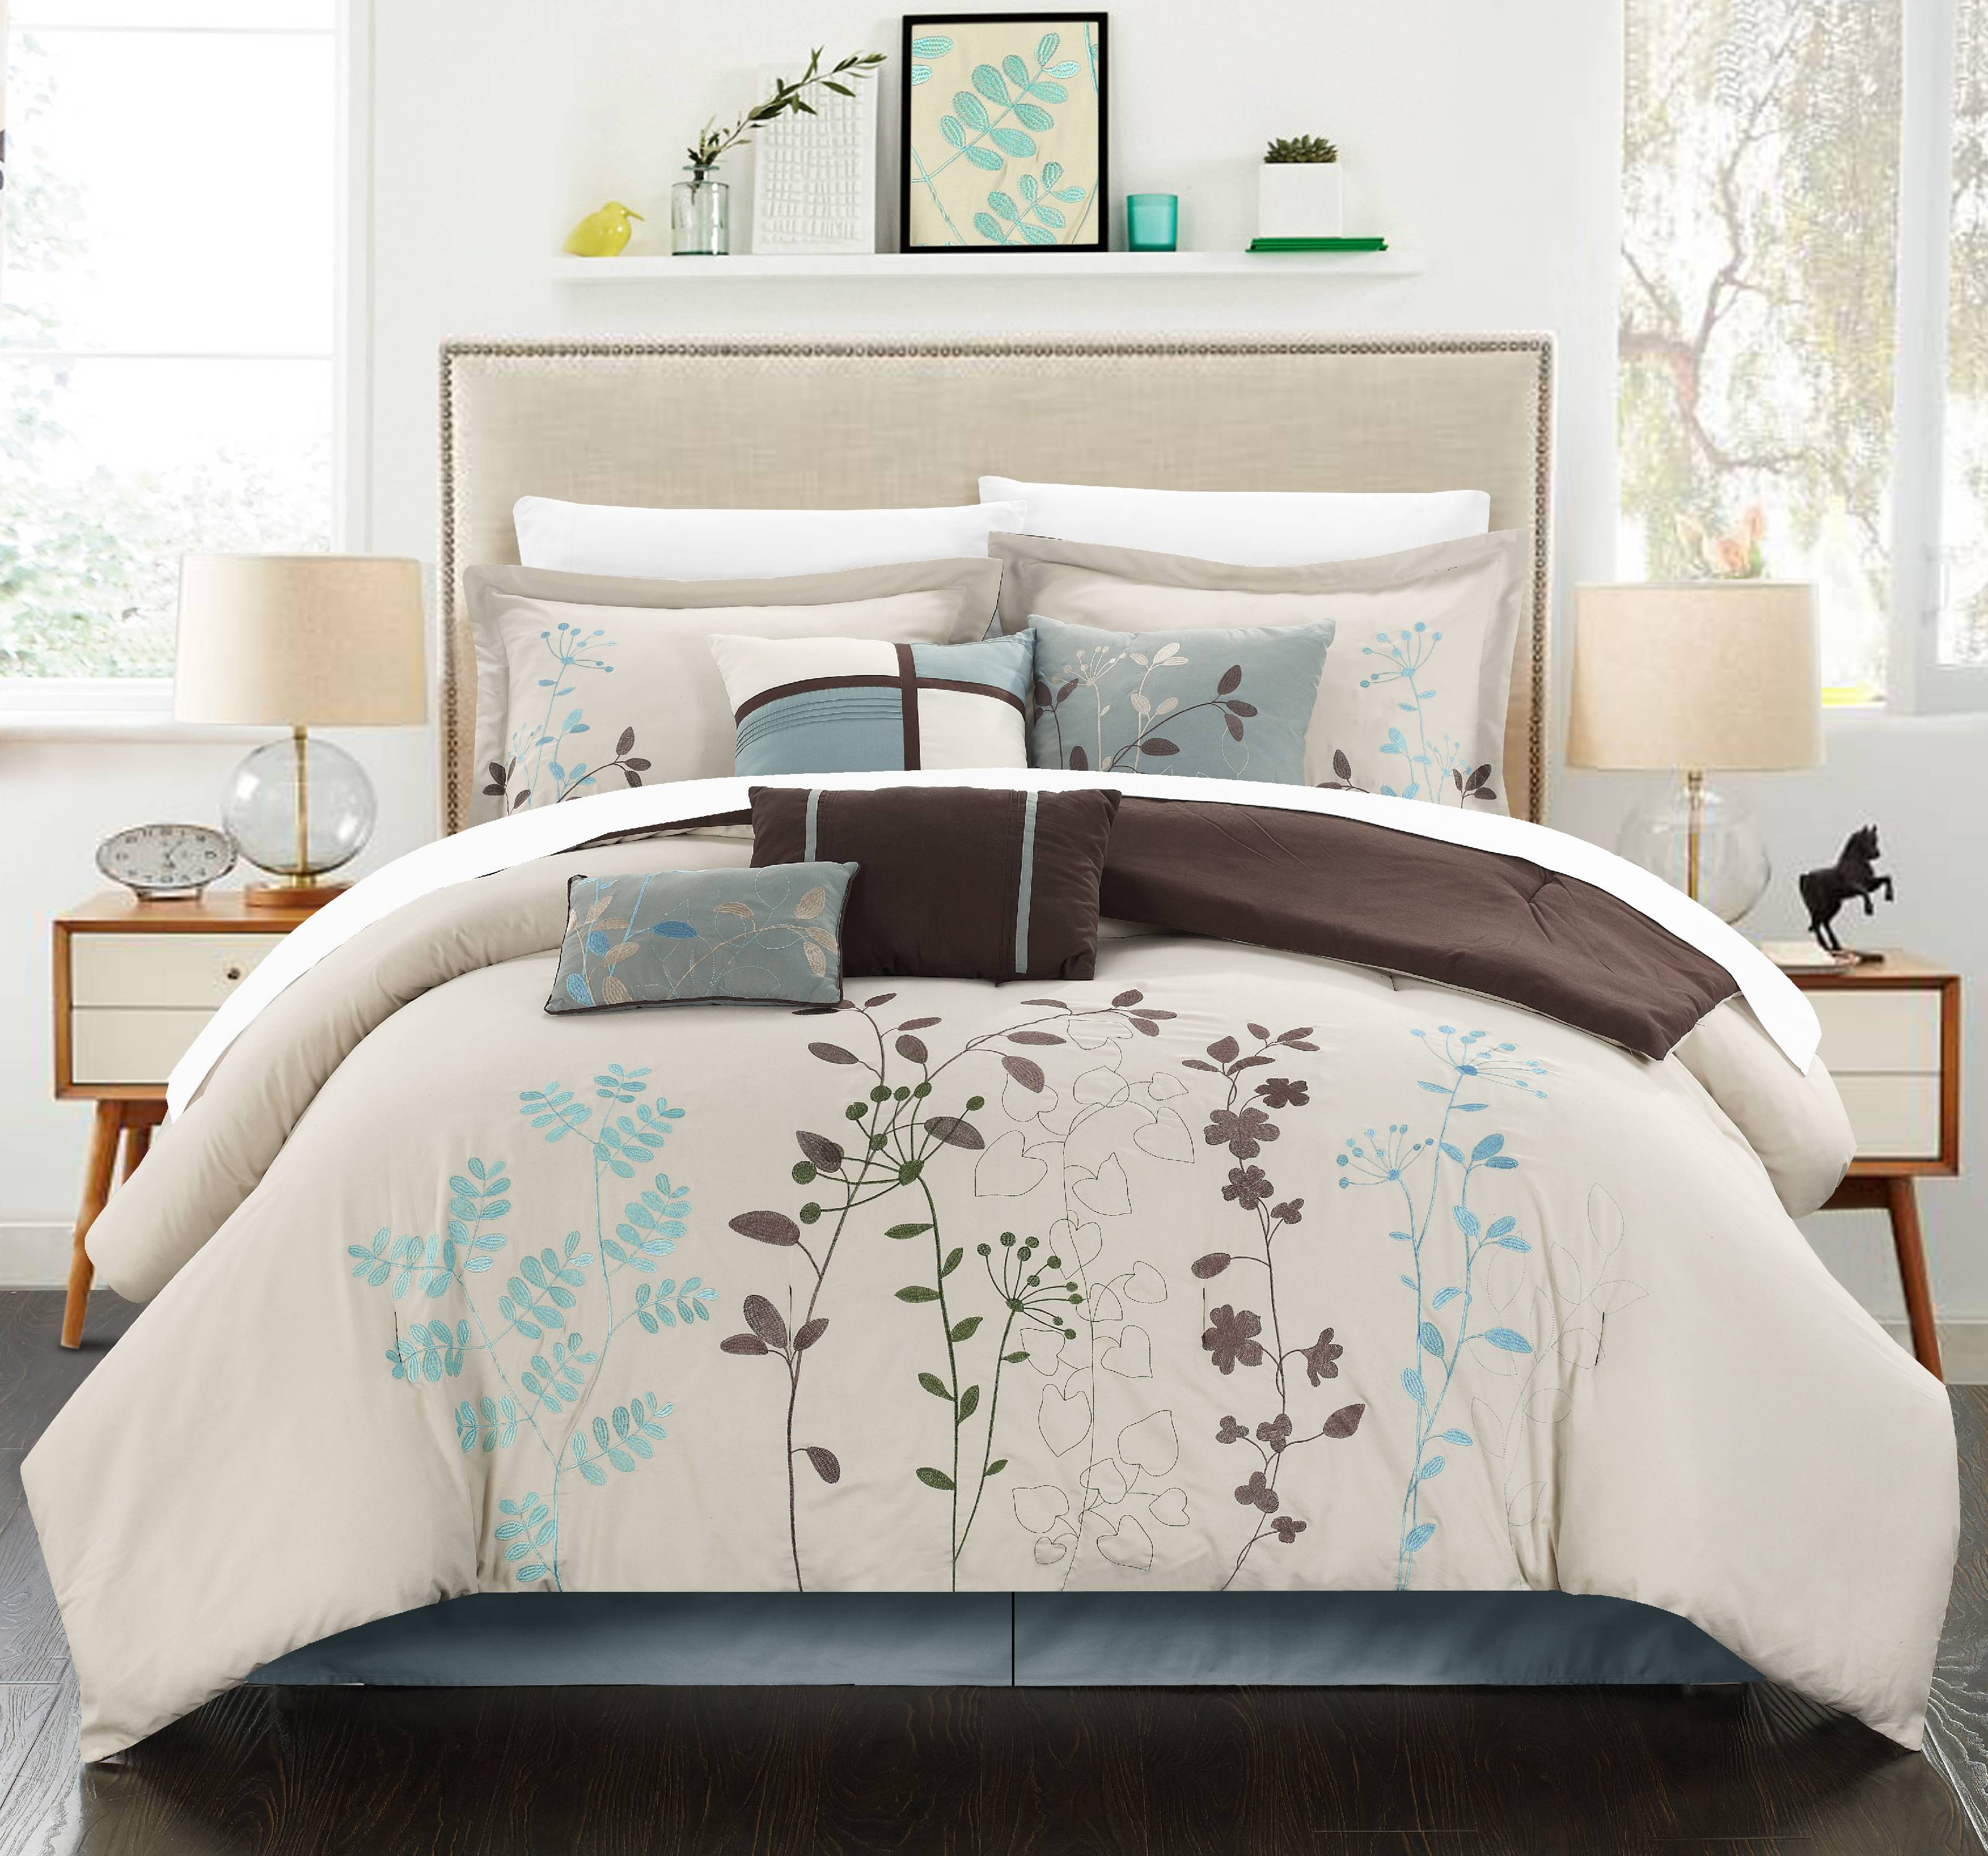 Chic Home Nits 12 Piece Bed in a Bag Comforter Set